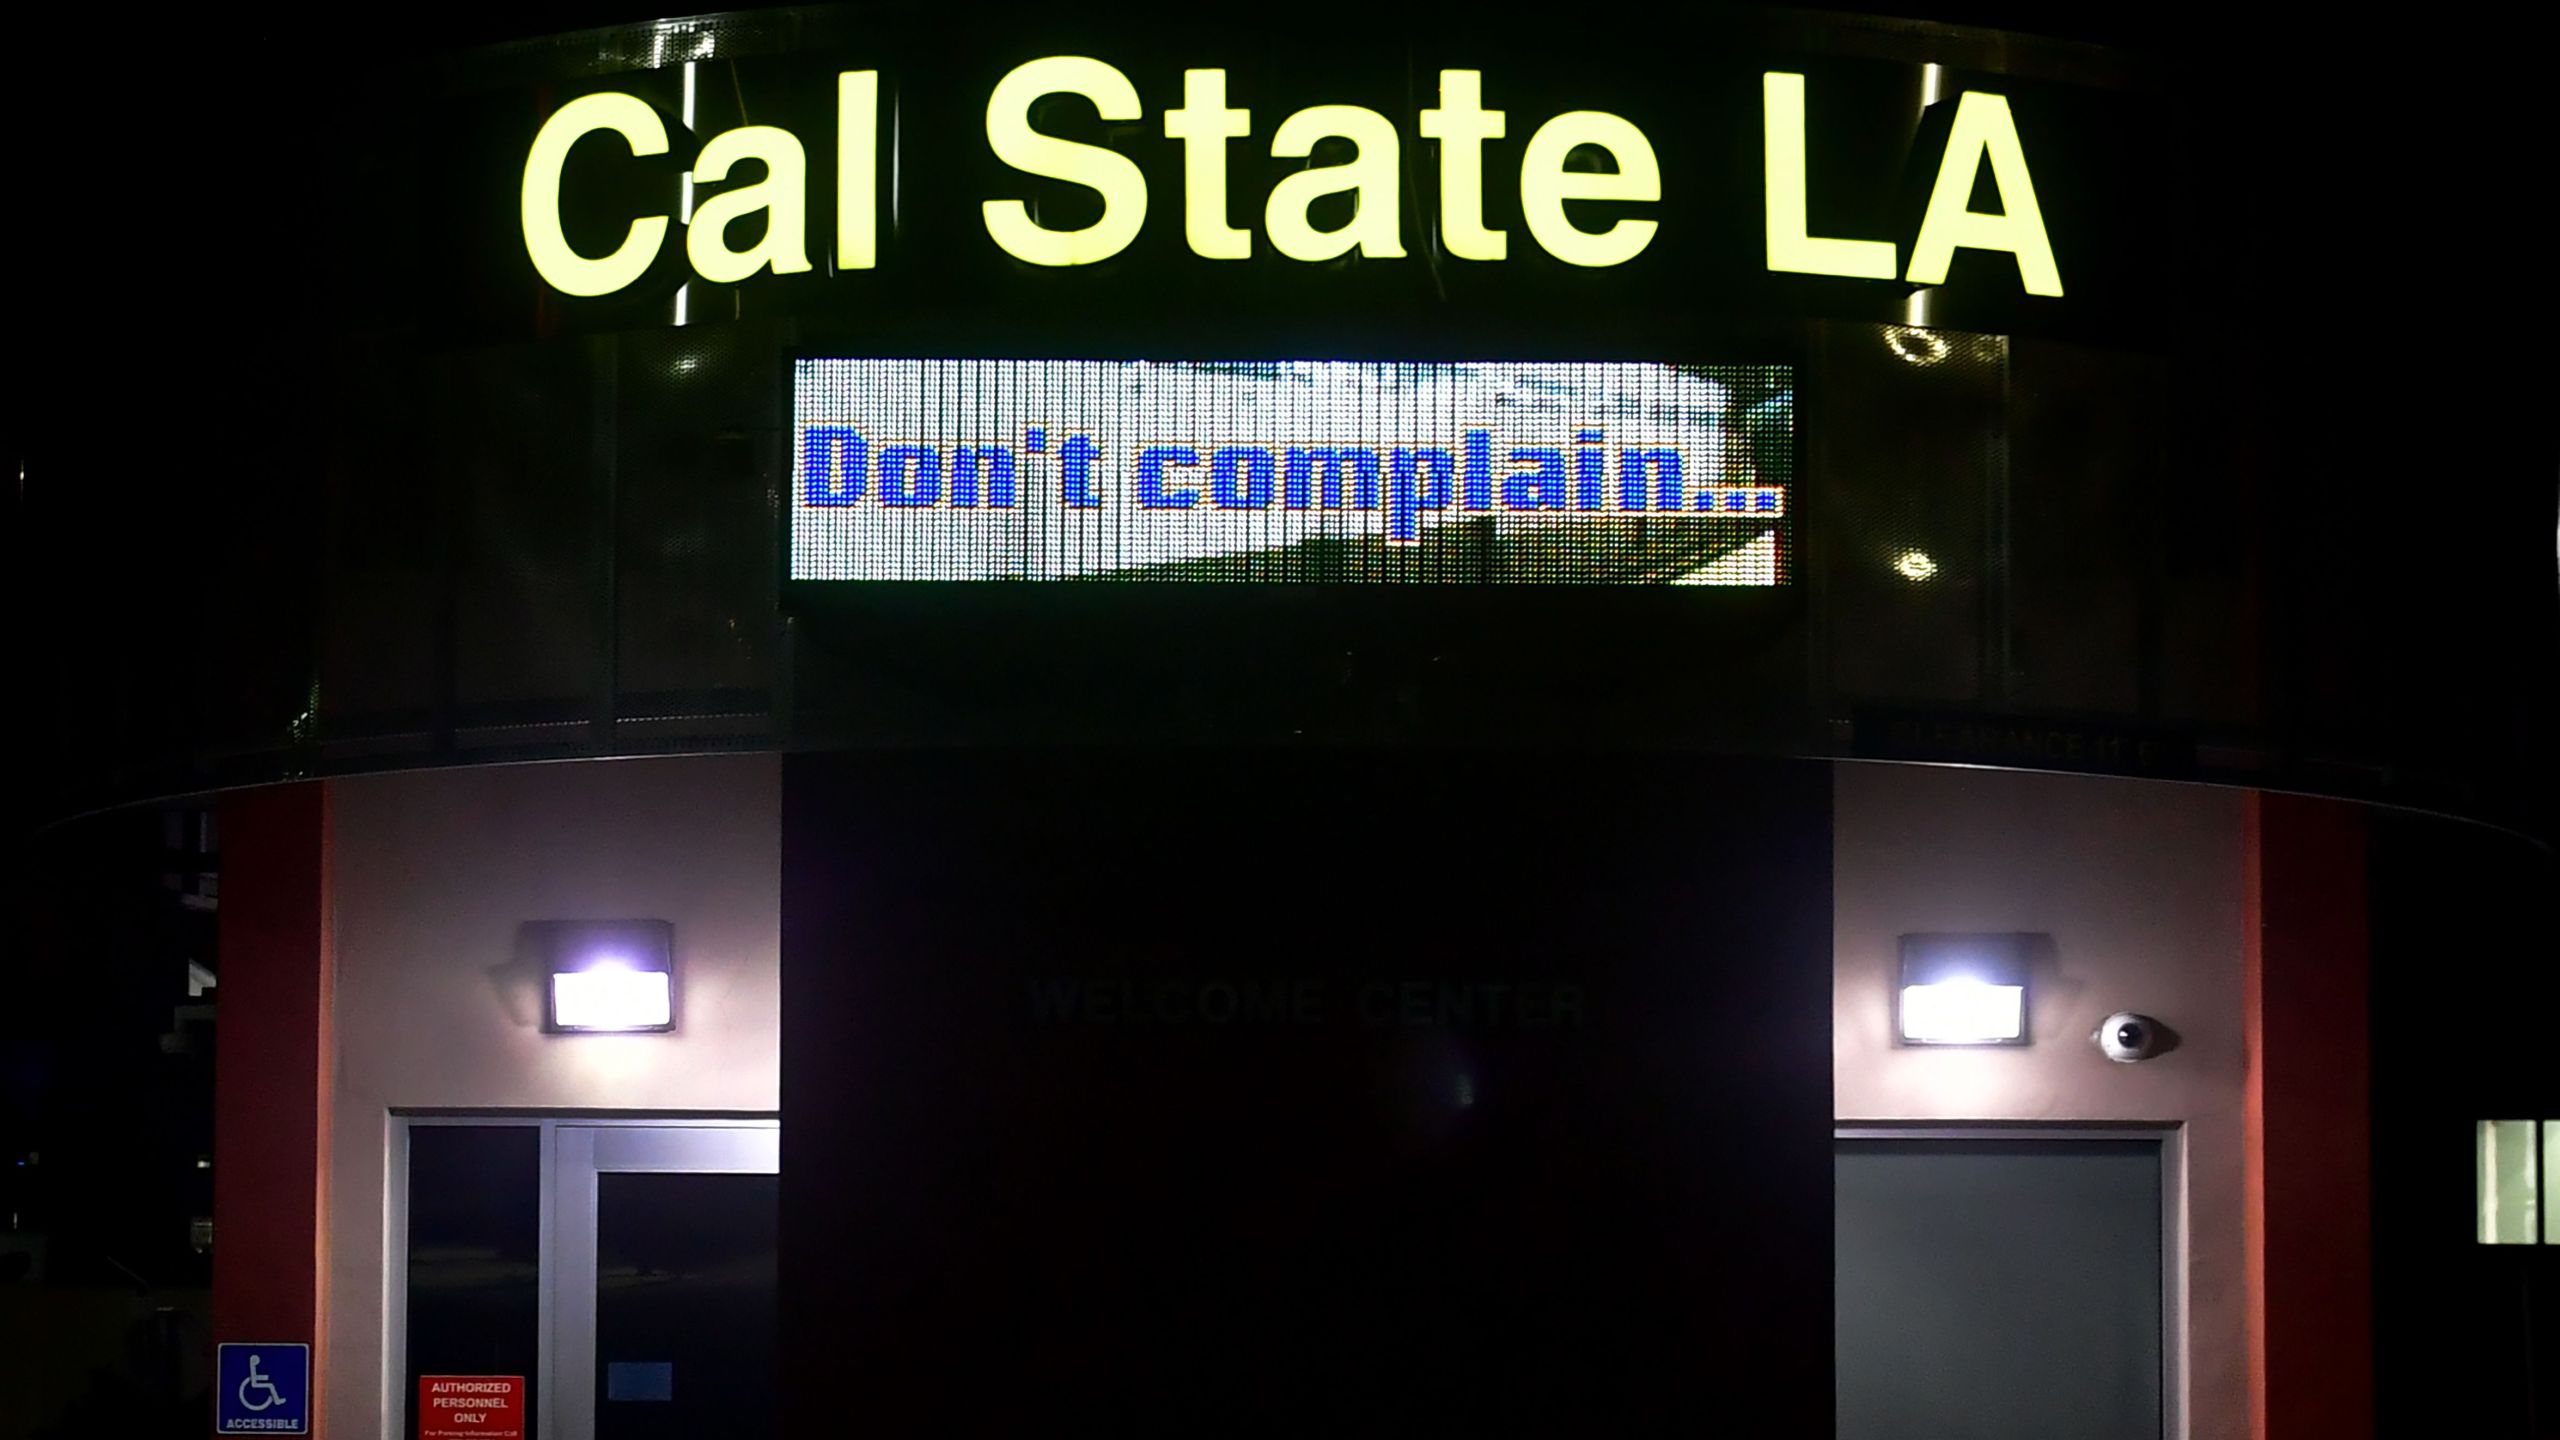 The Cal State Los Angeles campus is pictured during a measles quarantine that was issued for staff and students on April 25, 2019, in Los Angeles, California. (Credit: FREDERIC J. BROWN/AFP/Getty Images)